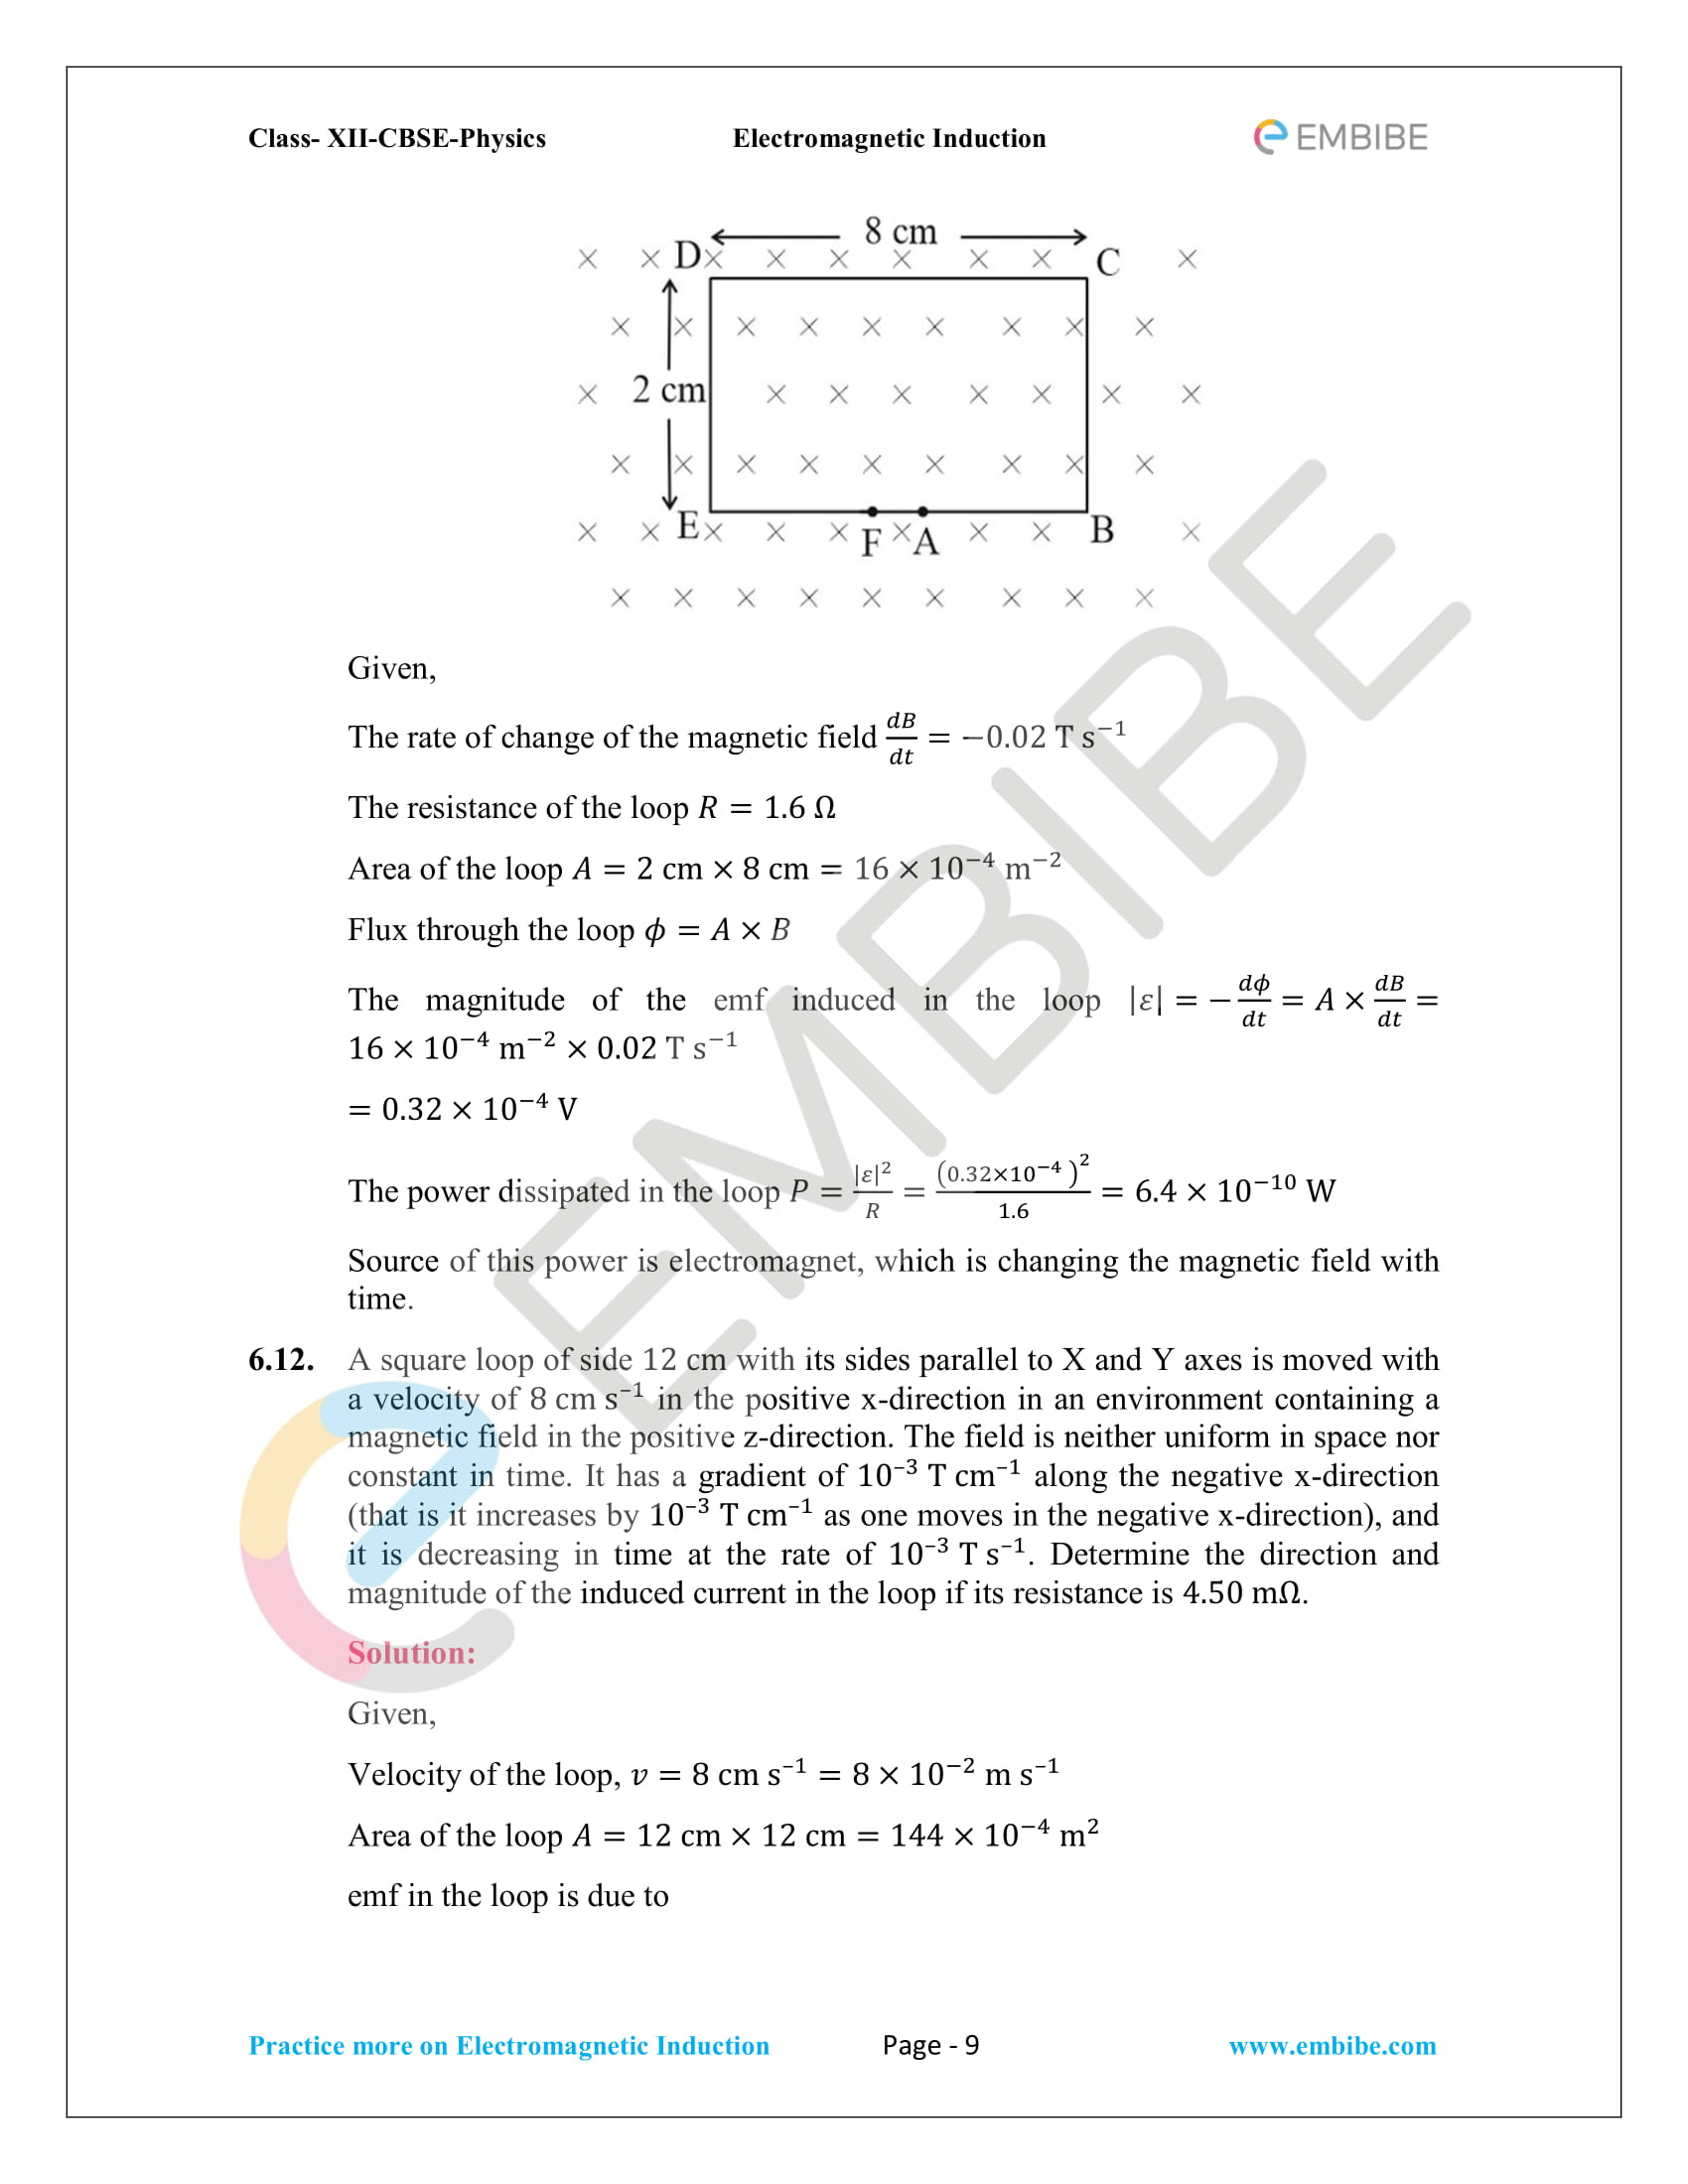 CBSE NCERT Solutions Class 12 Physics Chapter 6 PDF - Electromagnetic Induction - 9